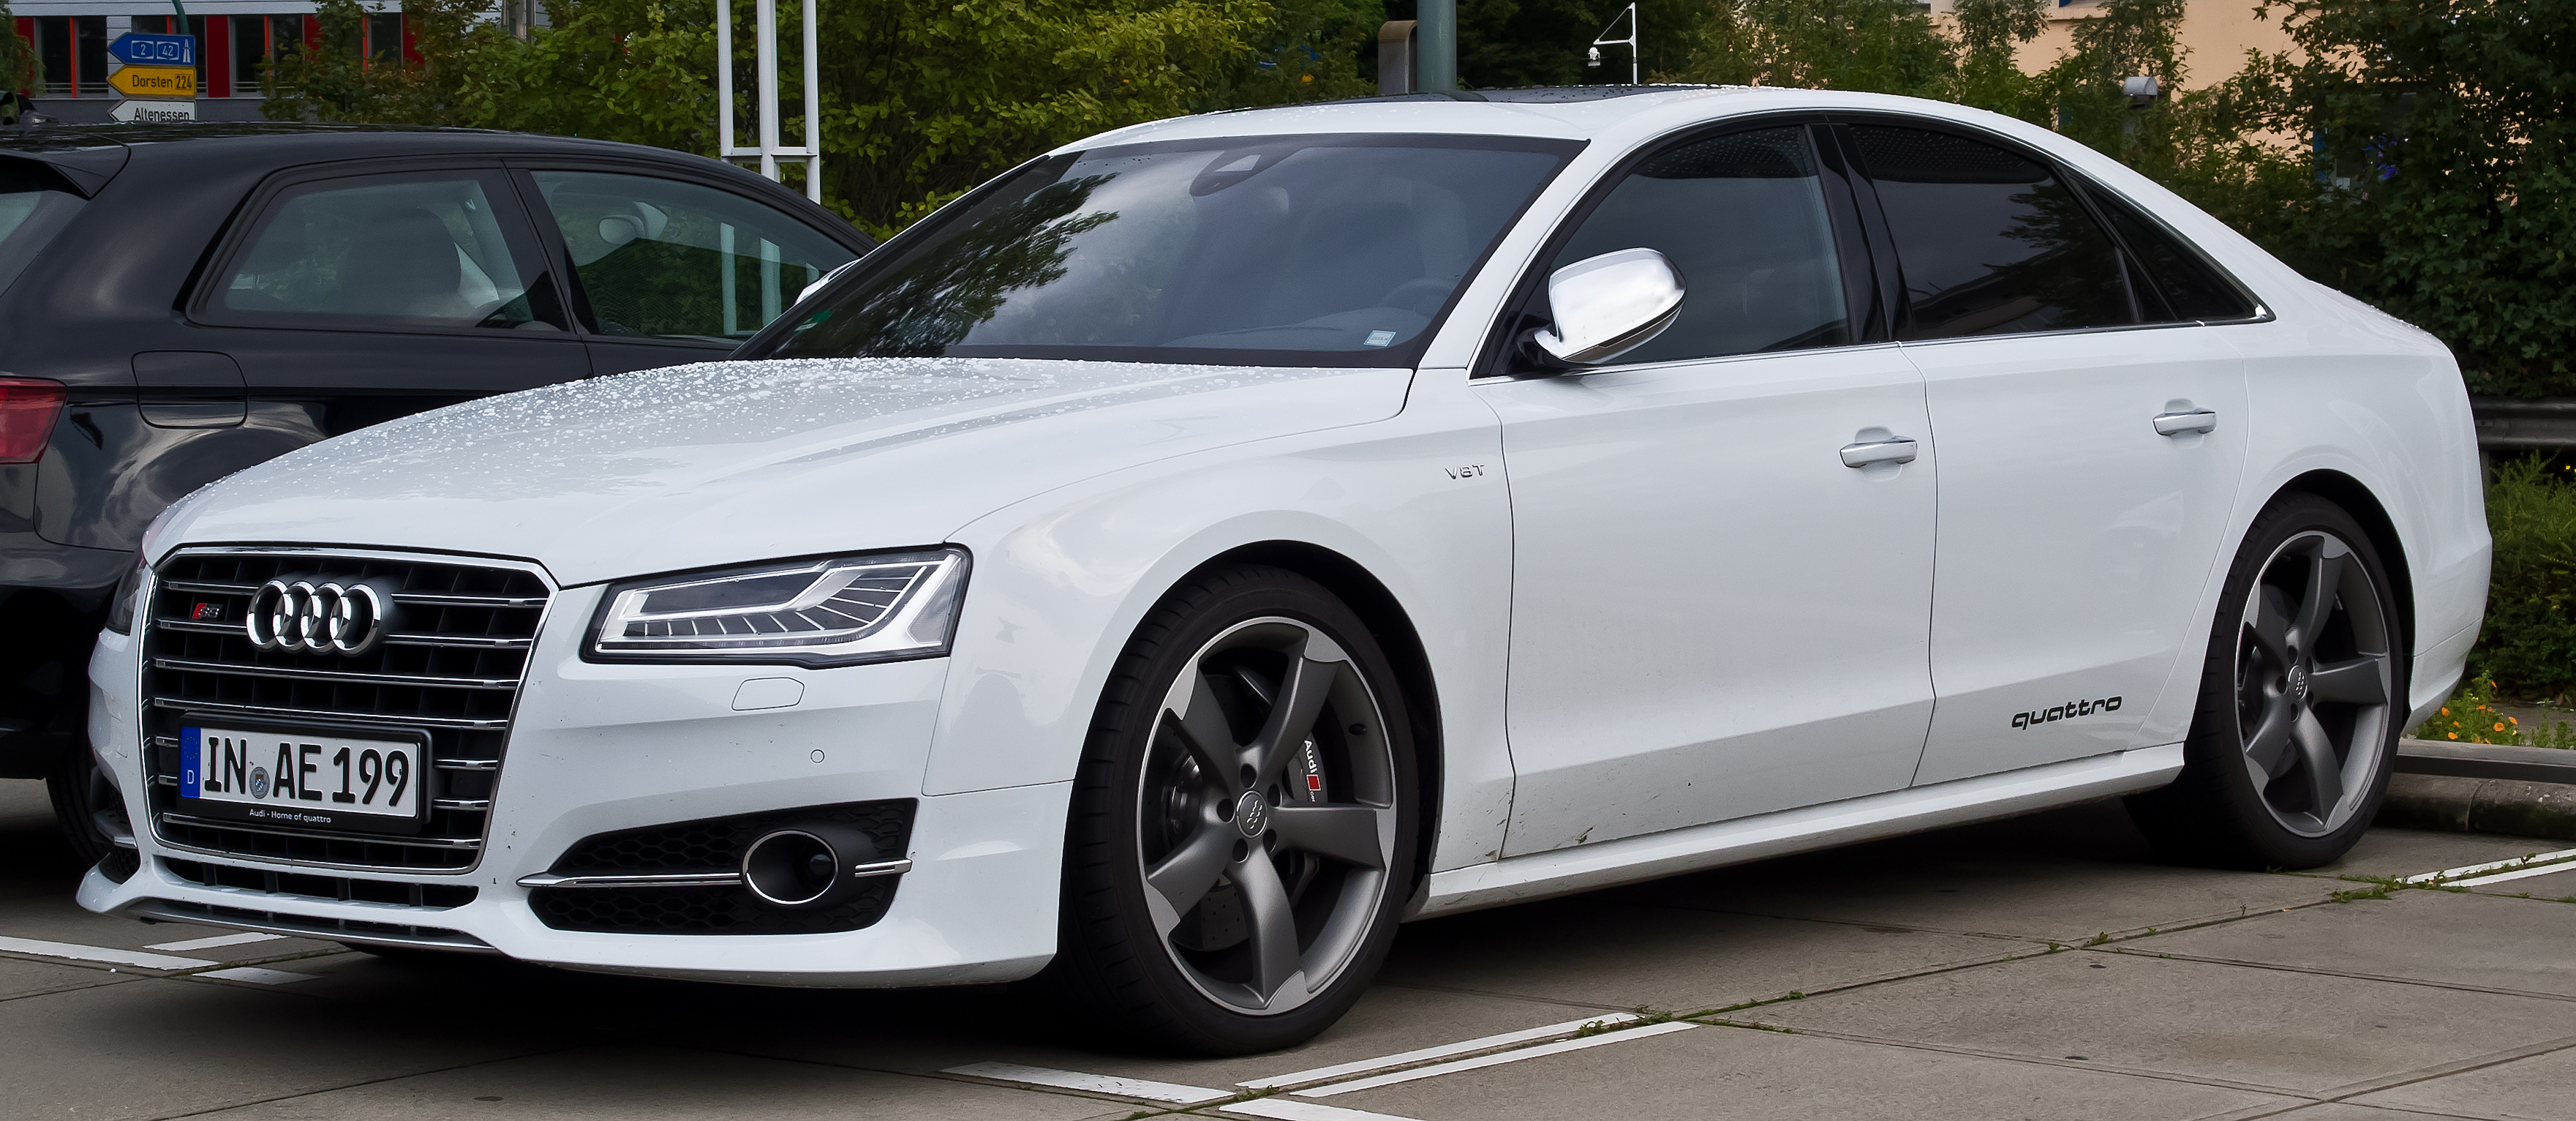 Pictures of audi s8 d4 2013 #8